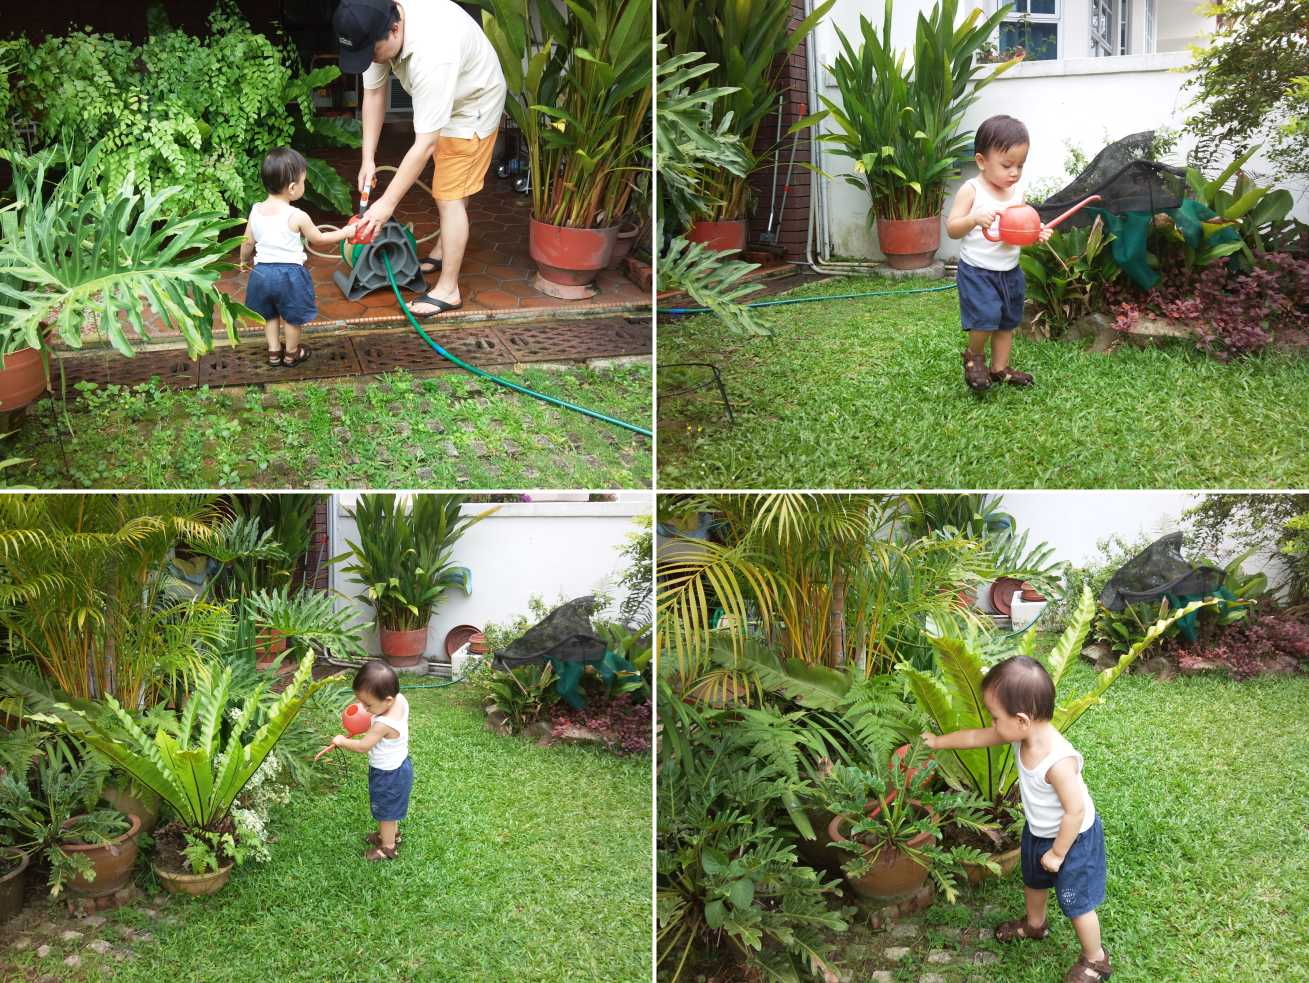 To use the watering can to water the plants just like what daddy do